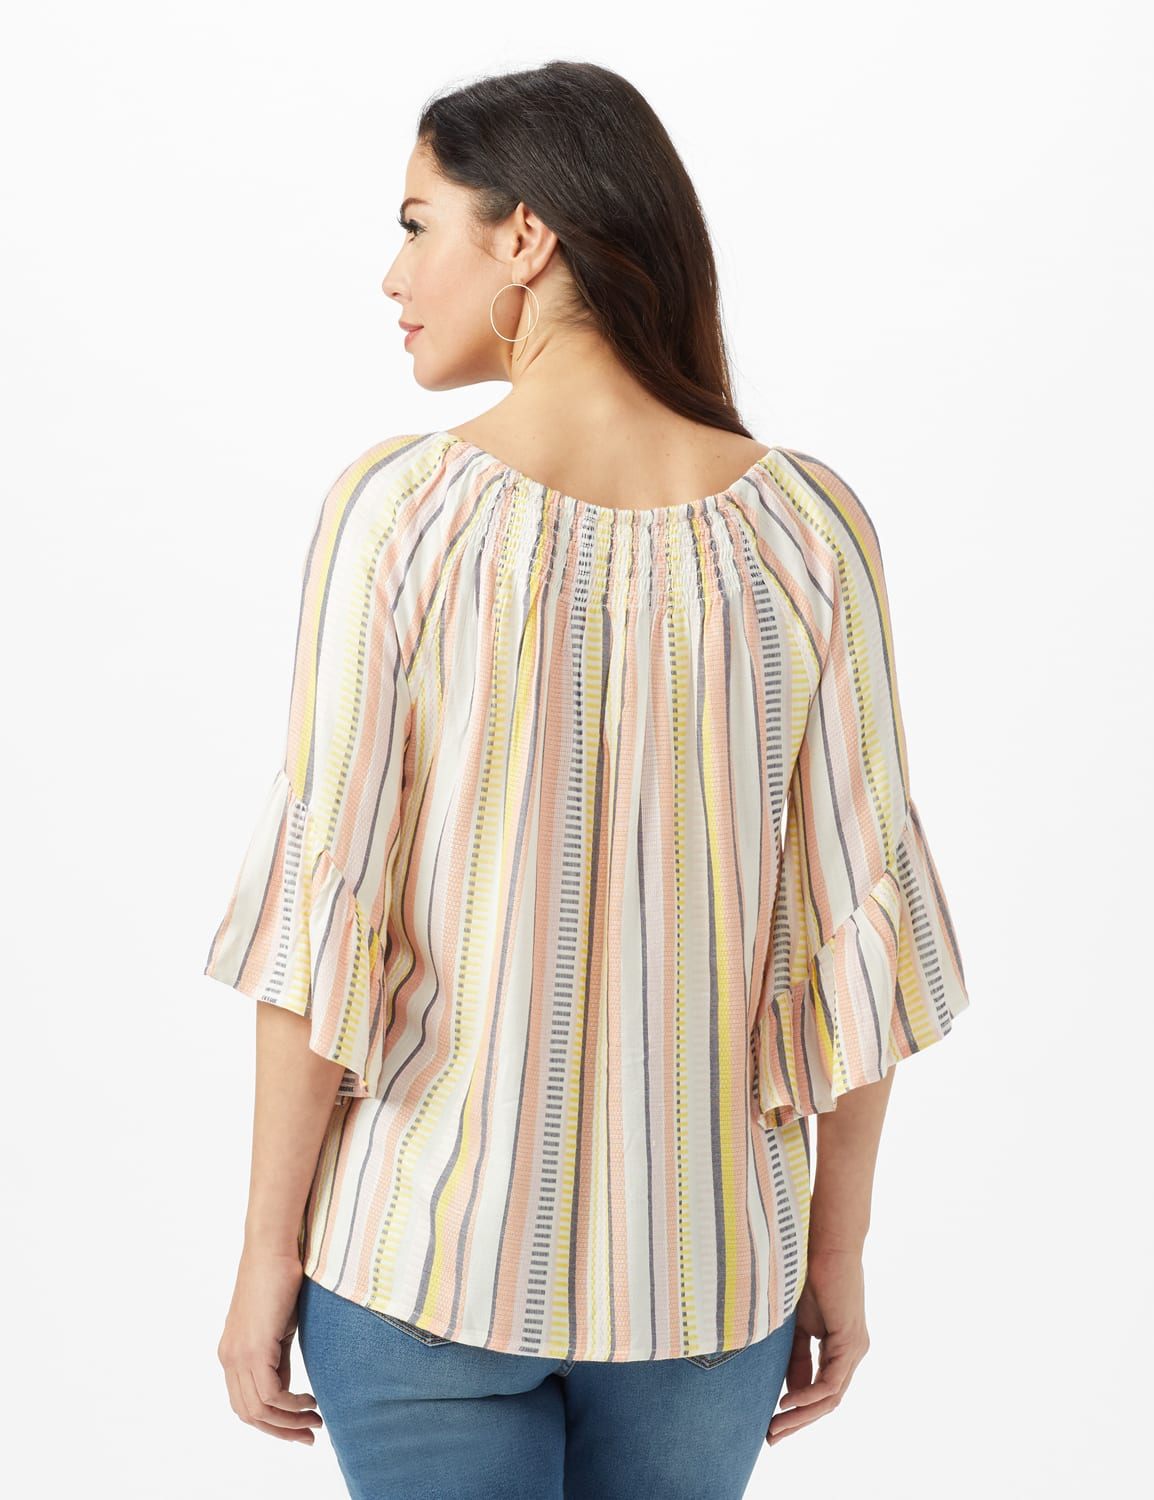 Textured Stripe Flared Sleeve Top - Coral - Back